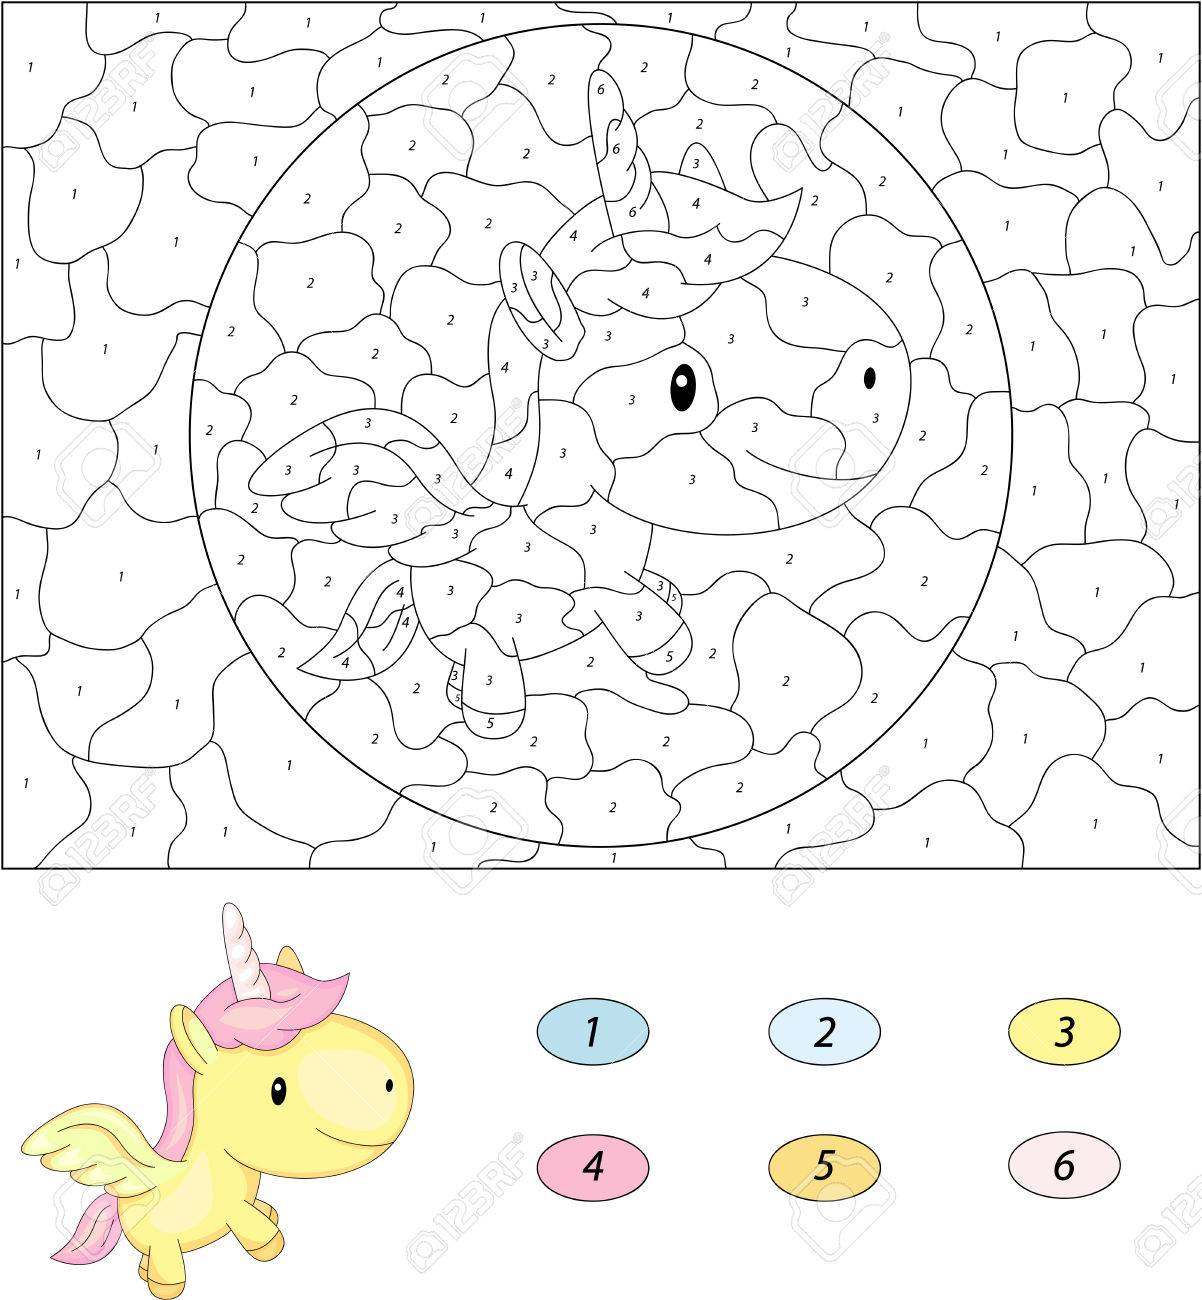 cartoon unicorn color by number educational game for kids